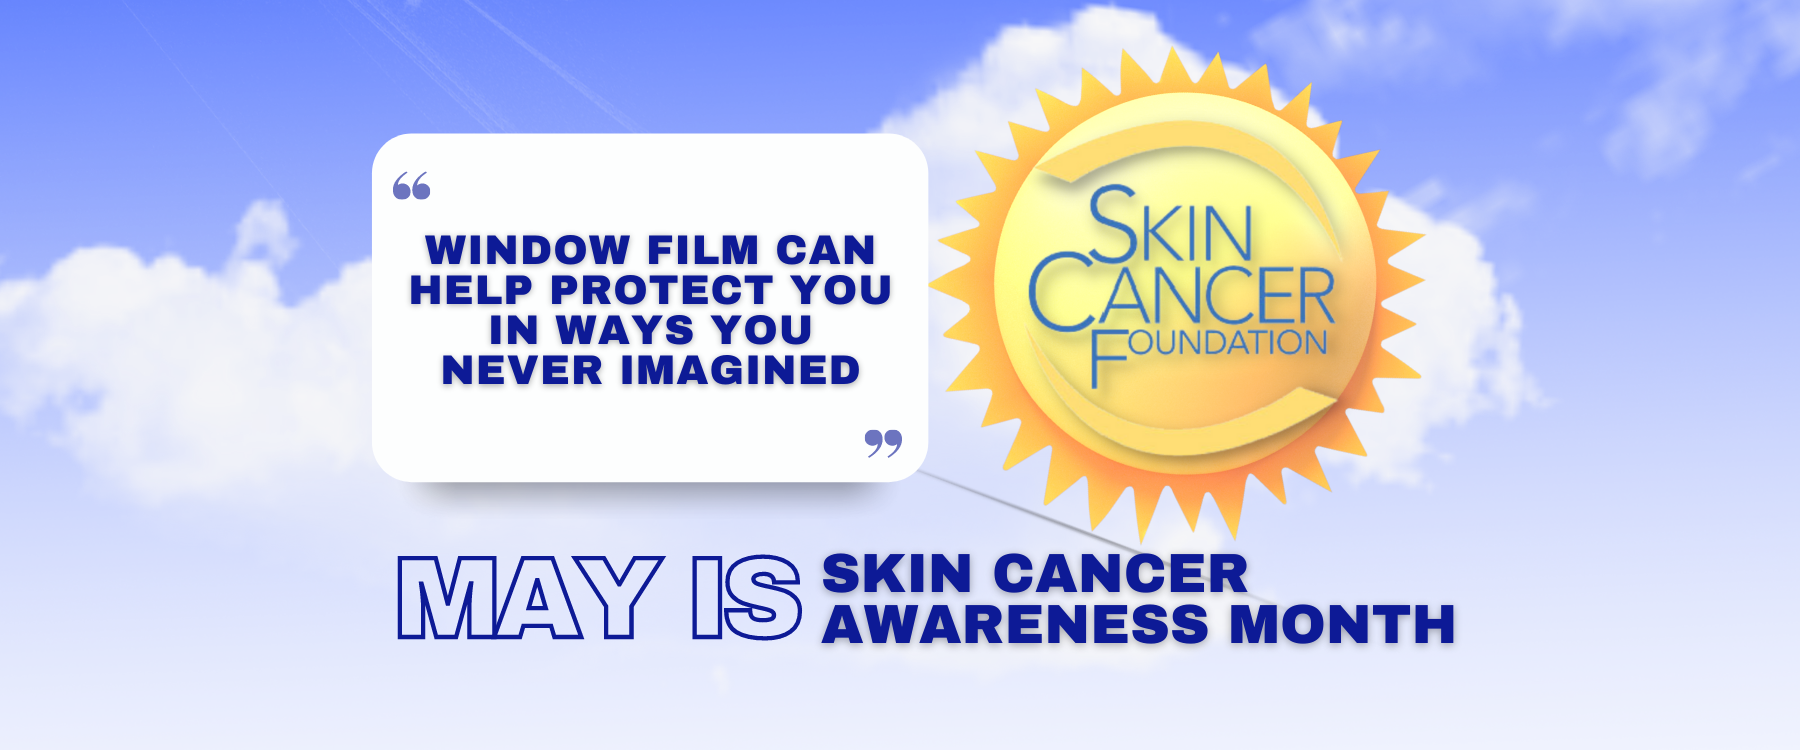 May Is Skin Cancer Awareness Month - See How Window Film Helps - Window Film and Window Tinting Services in Buffalo, New York